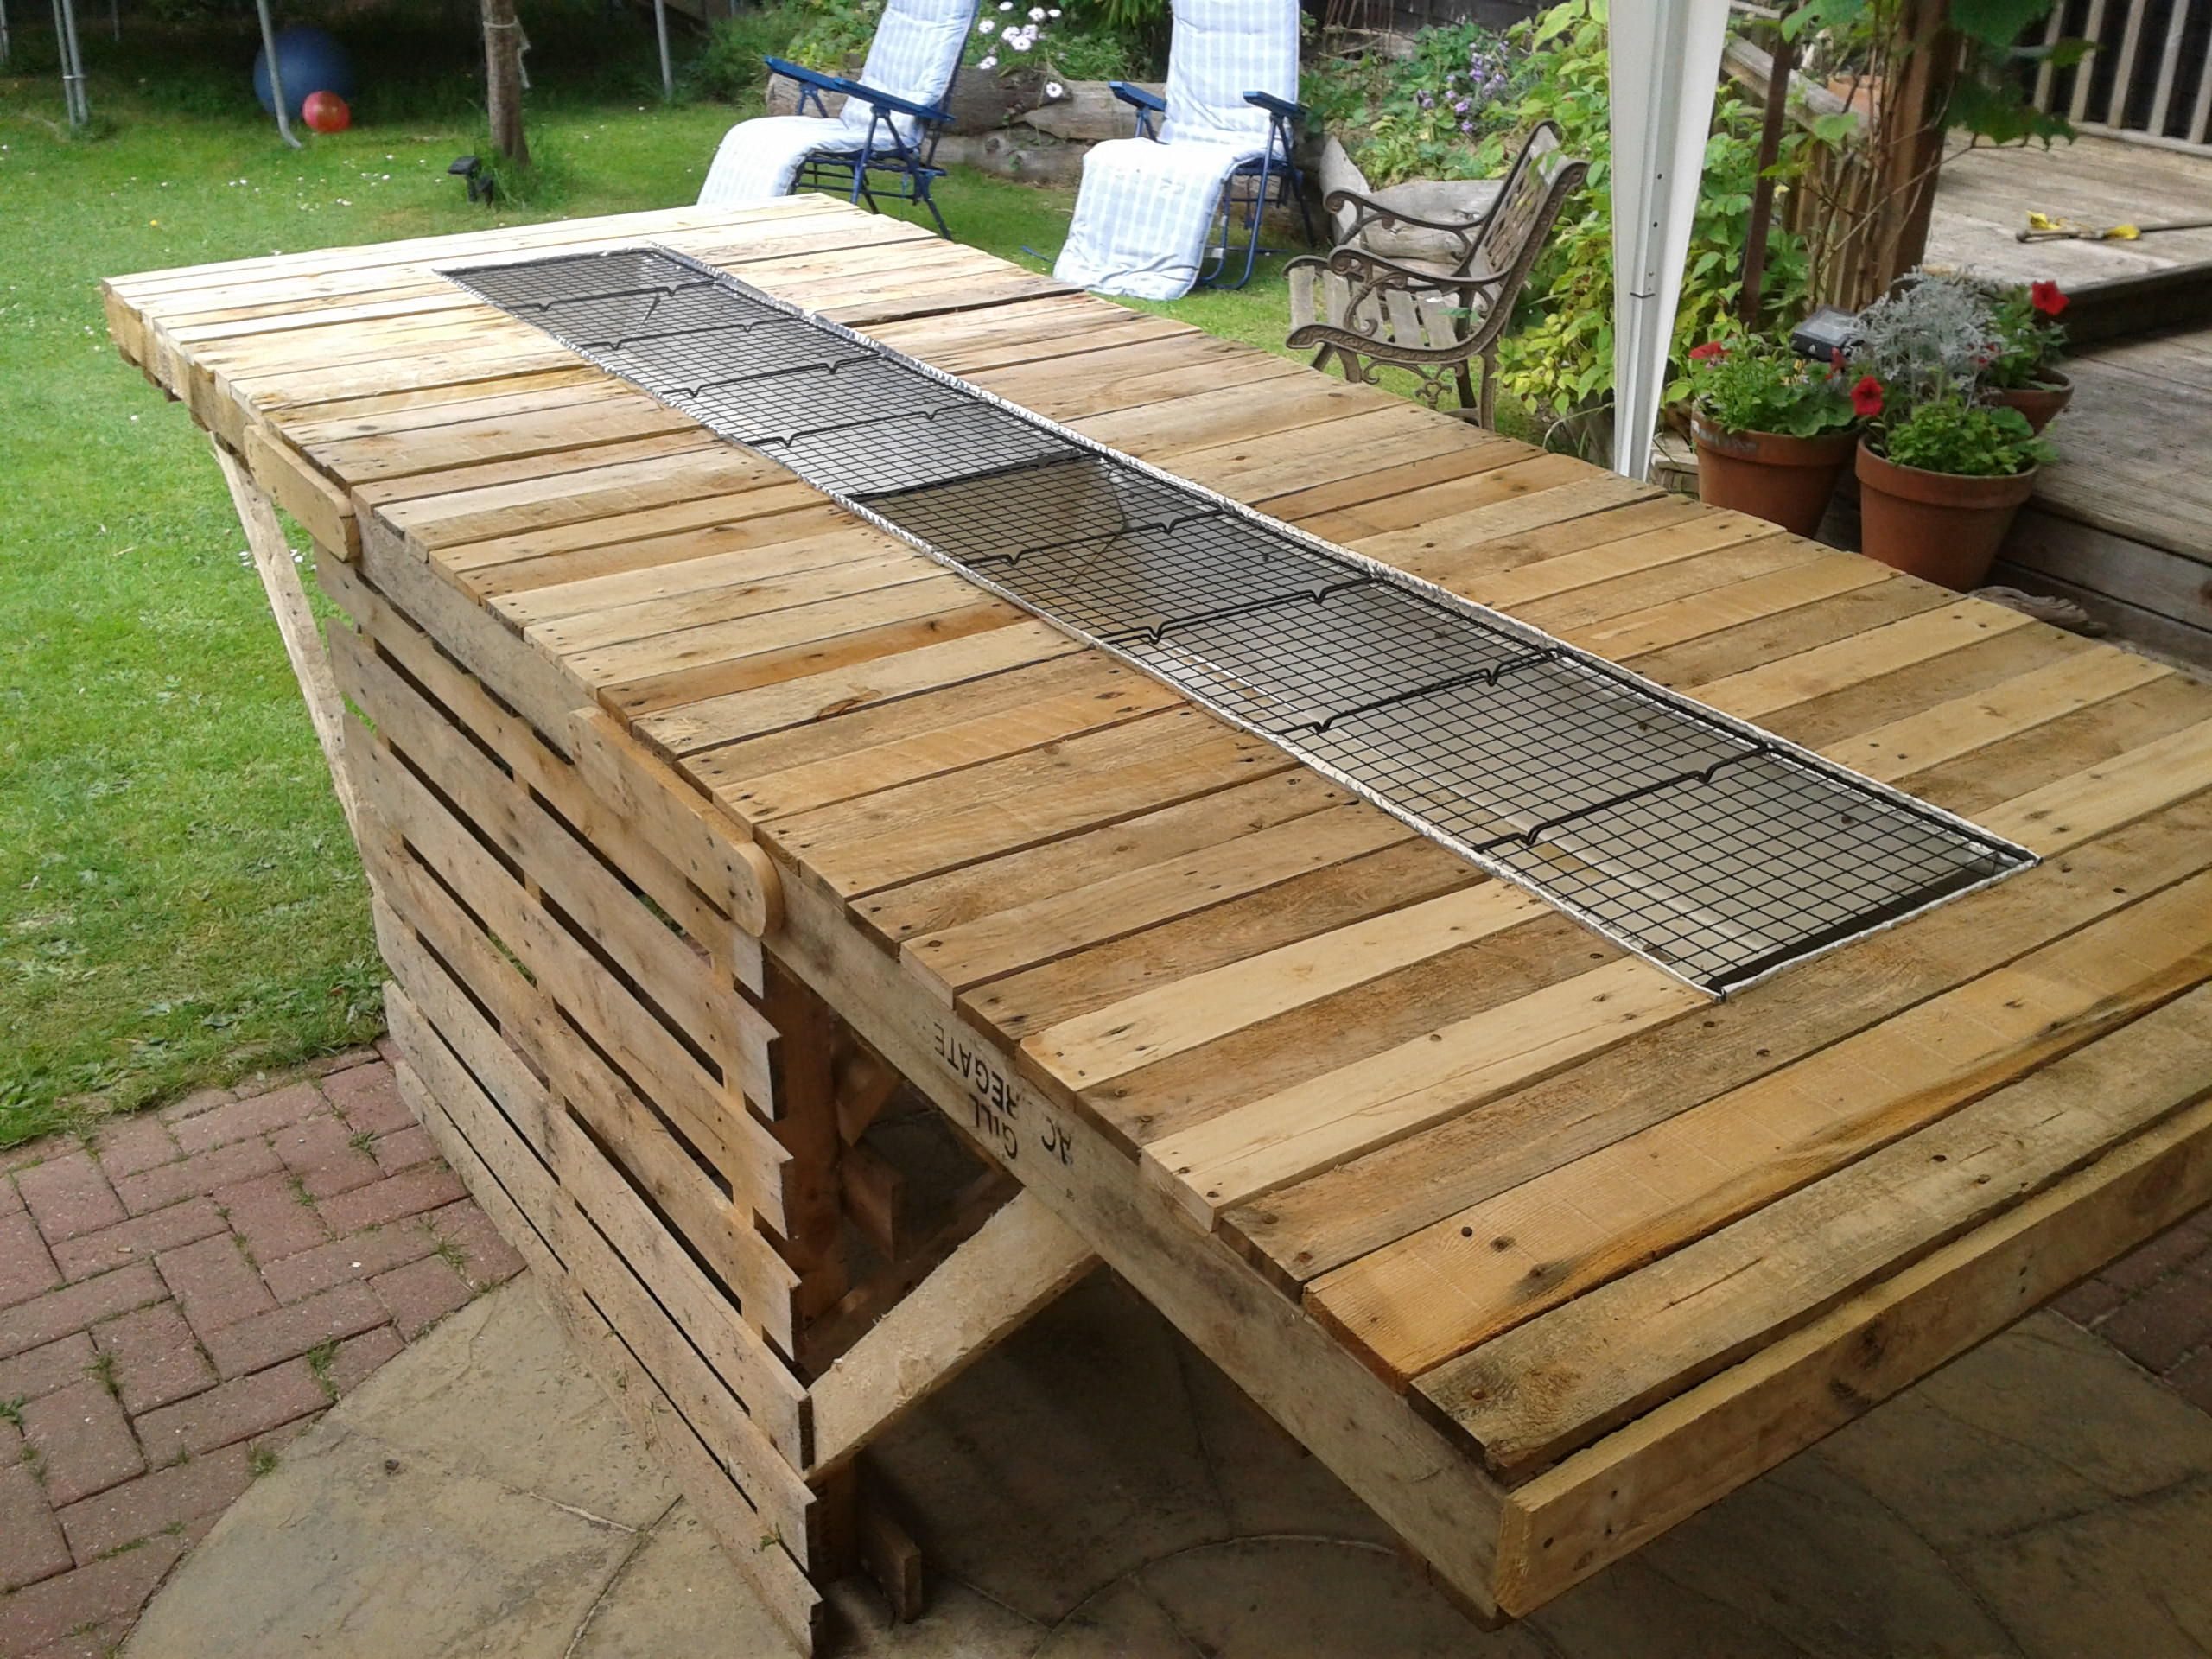 Pallet bbq table google search outdoor kitchen for Outdoor wood projects ideas